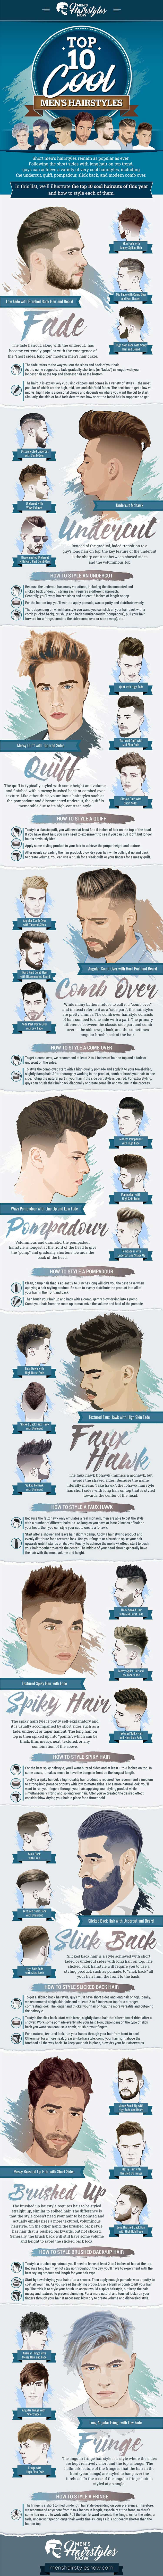 Cool Haircuts For Men - MHN (1)